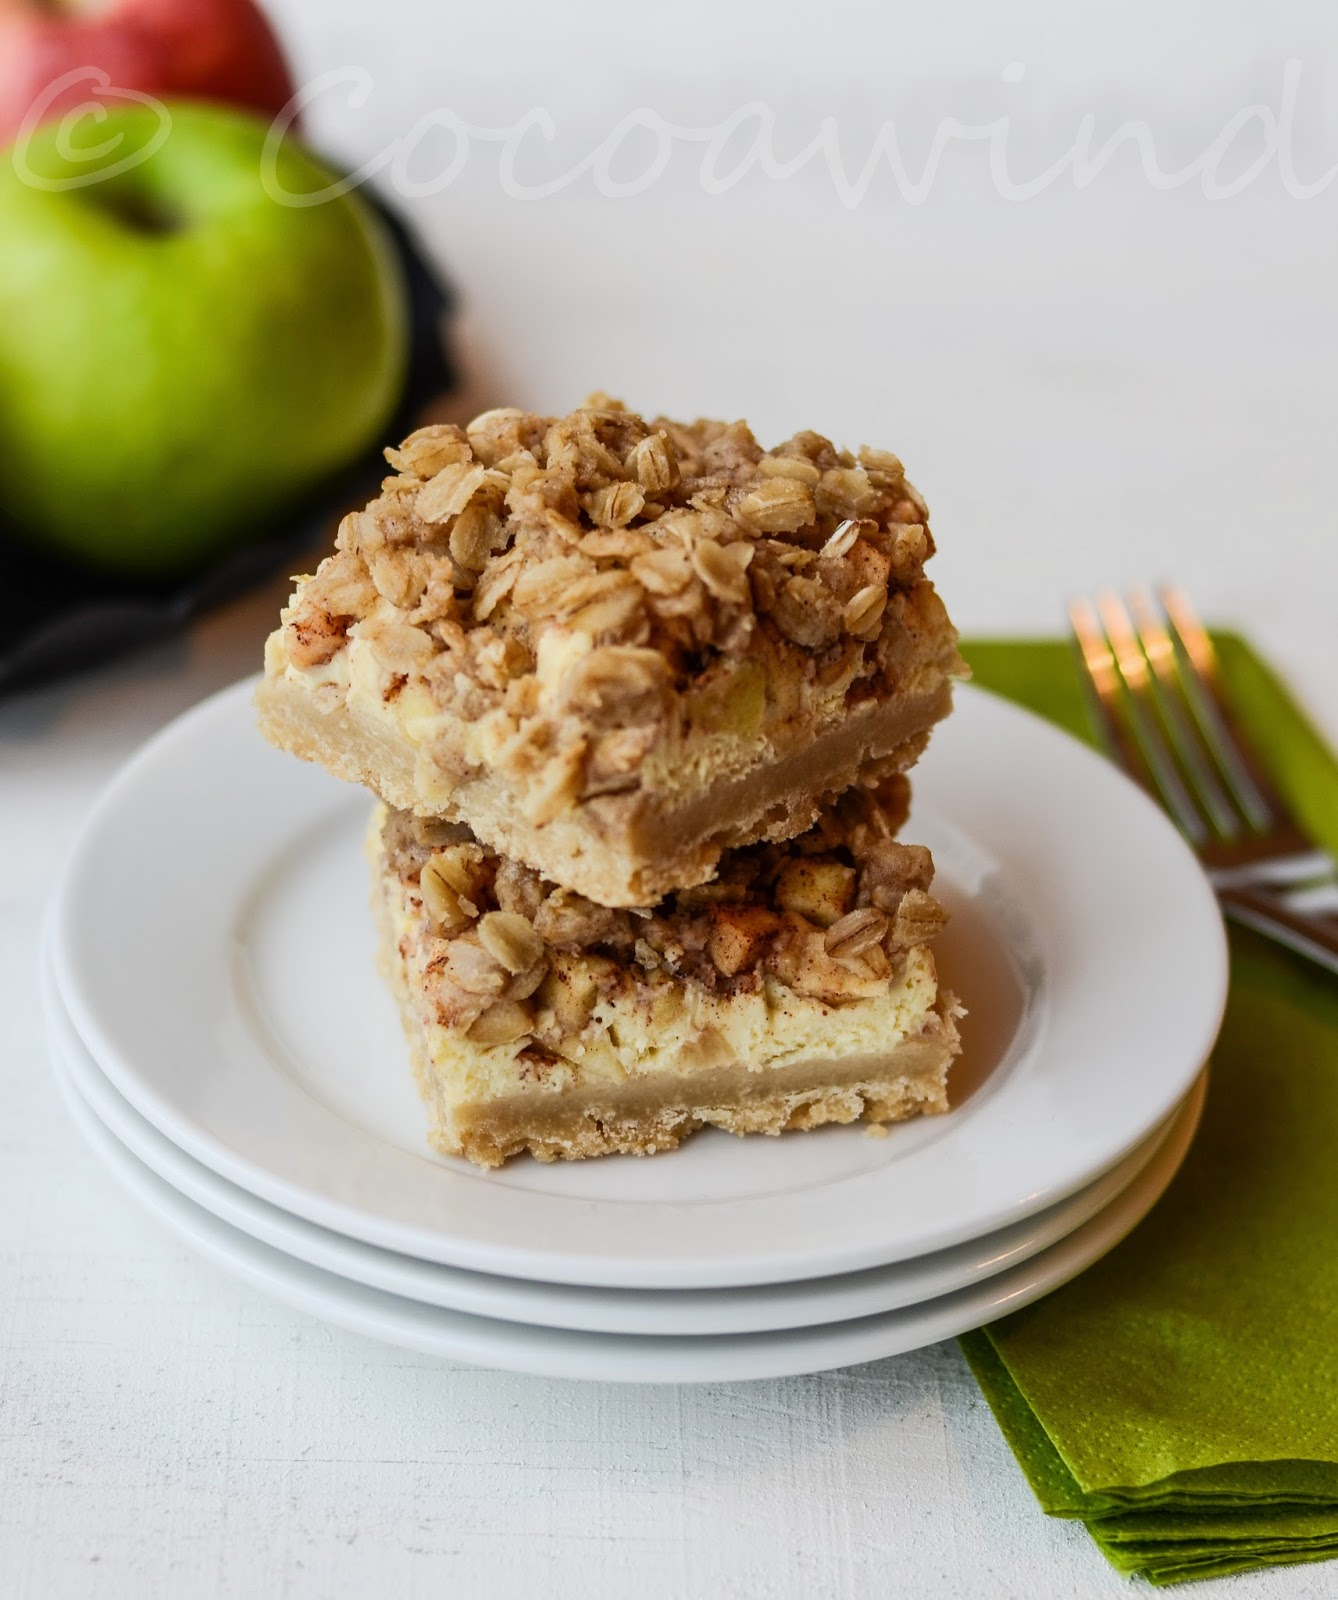 Apple Streusel Cheesecake - Version 2.0